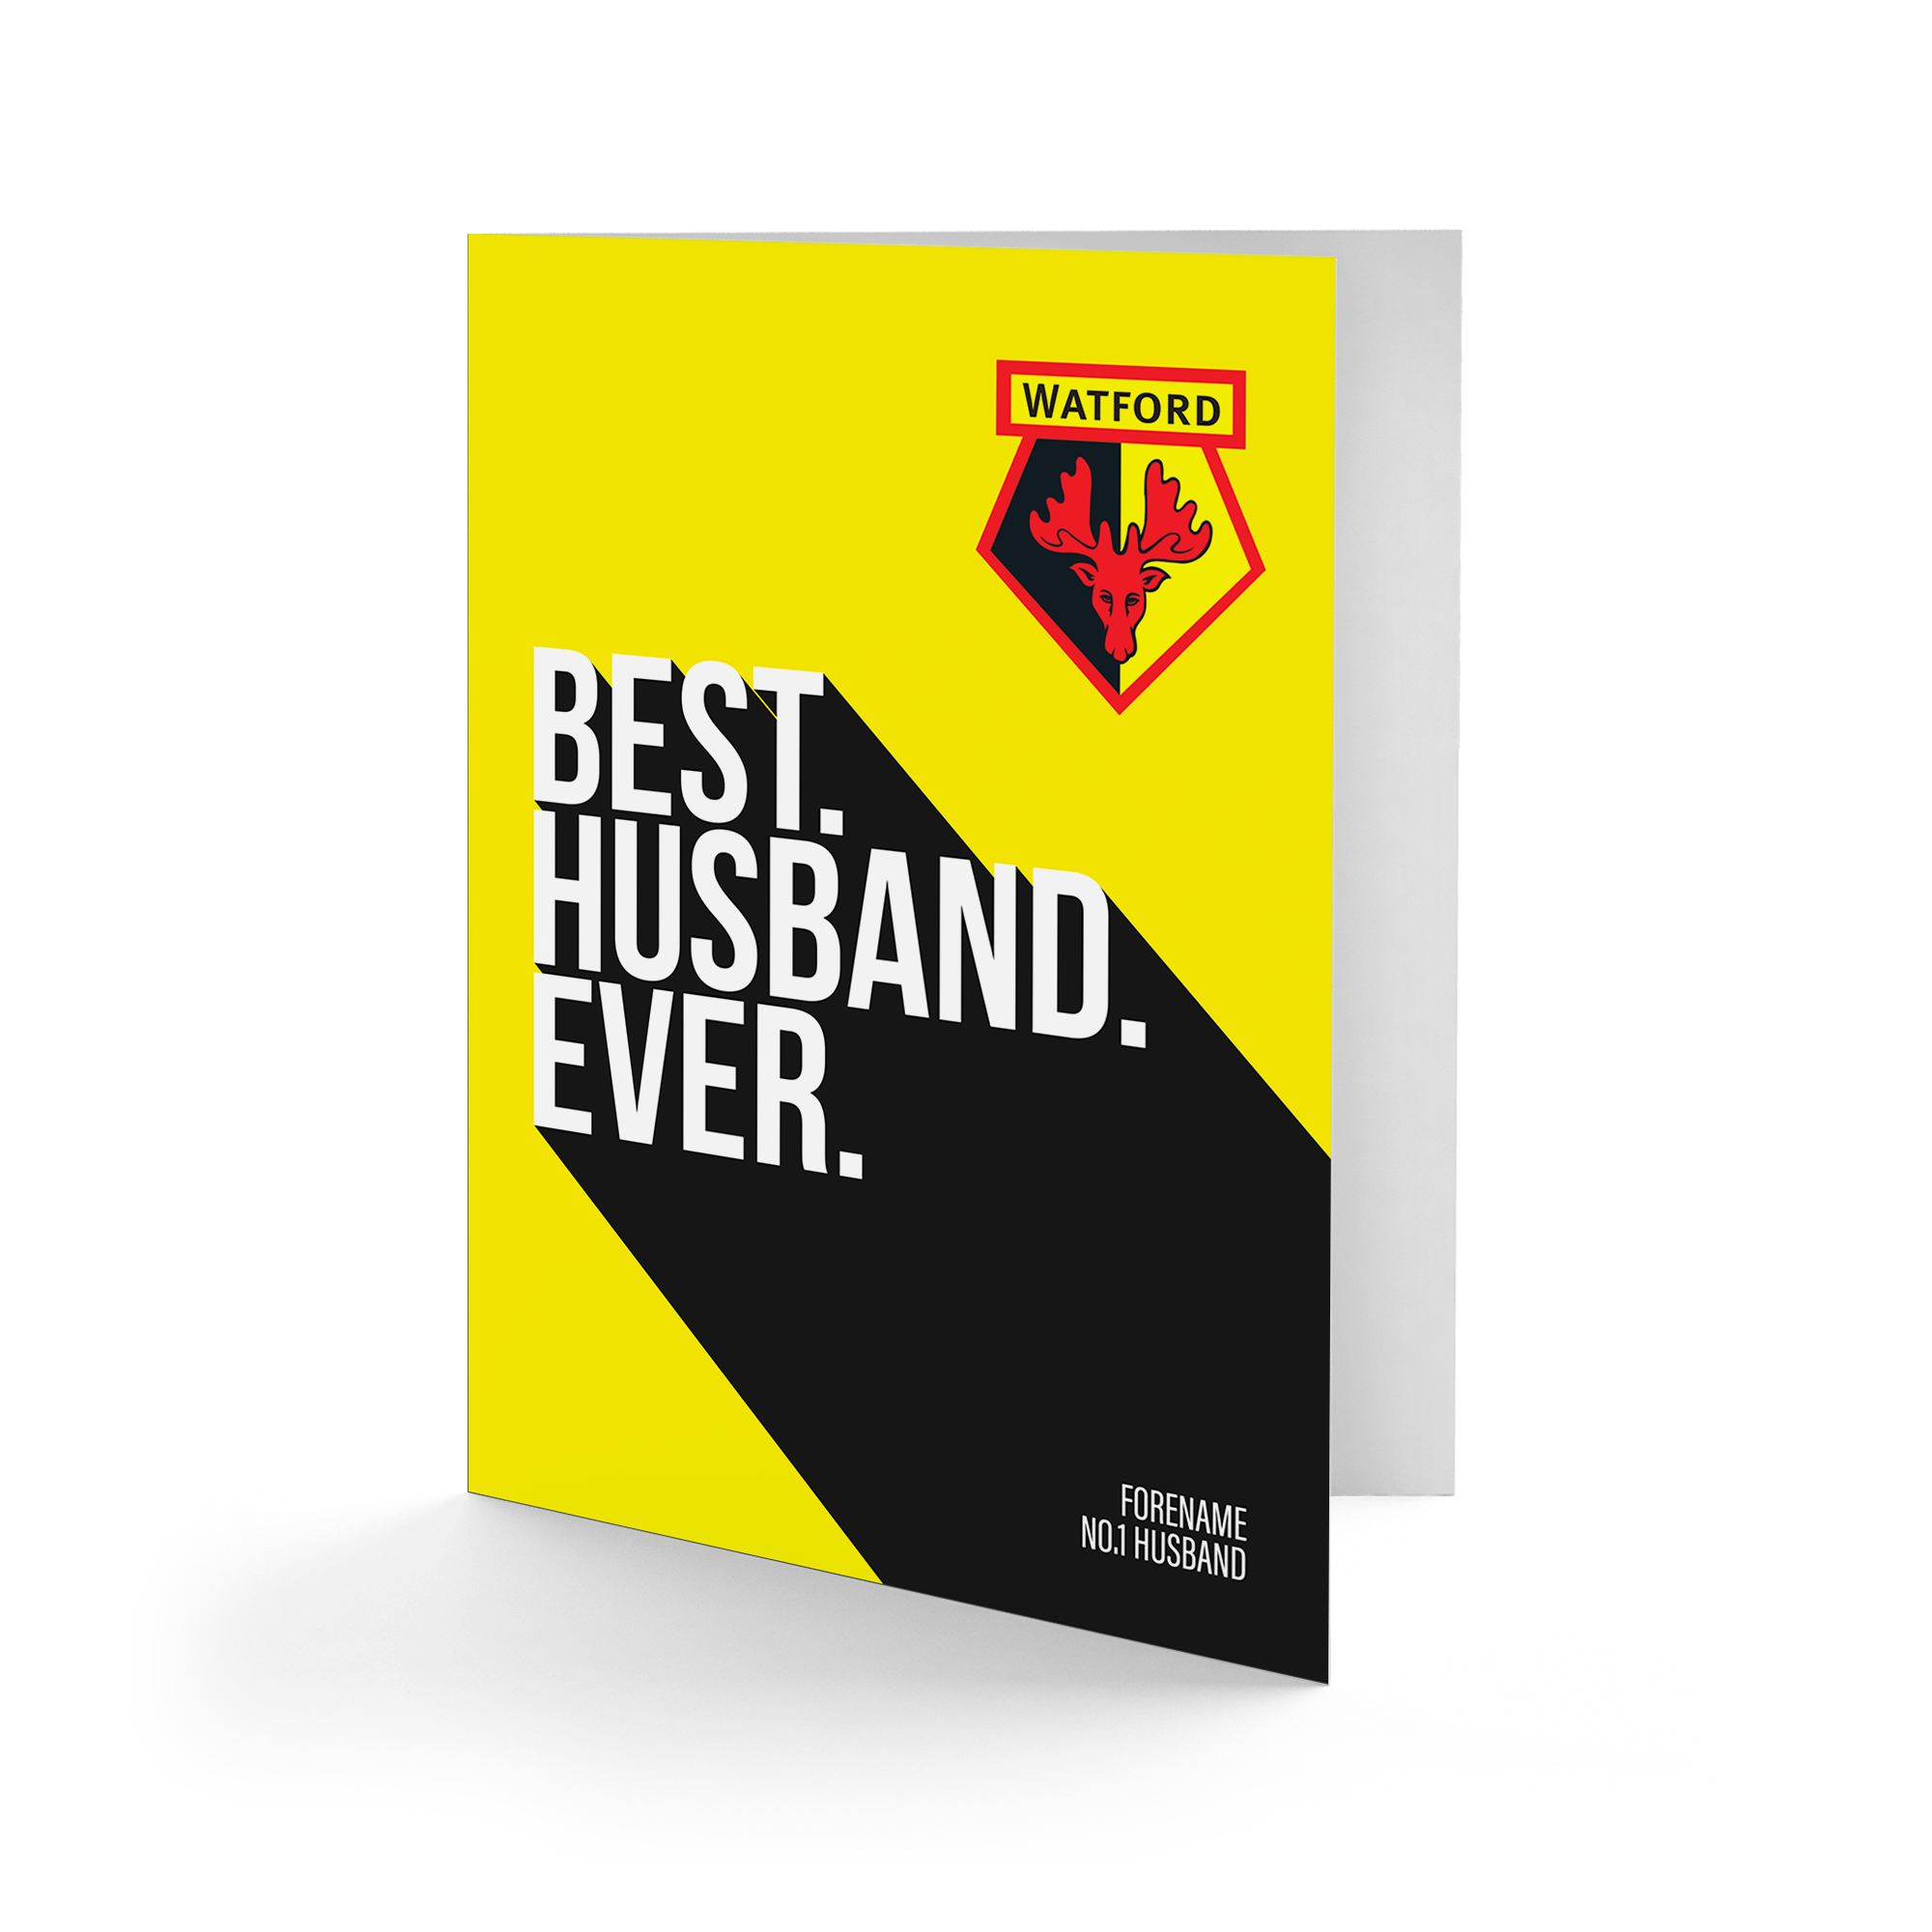 Watford FC Best Husband Ever Card